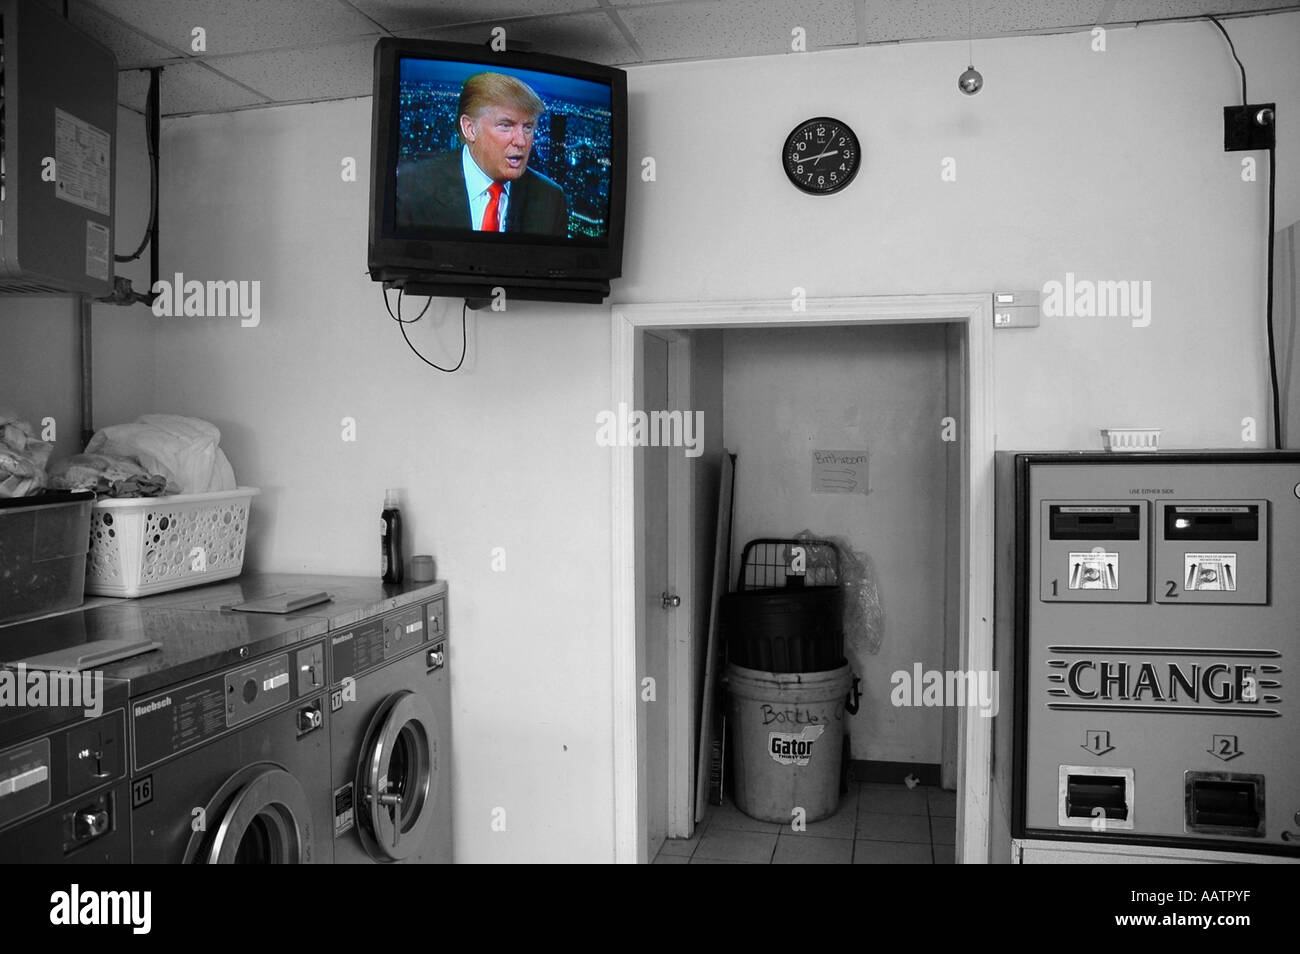 Laundromat with Donald Trump on TV - Stock Image